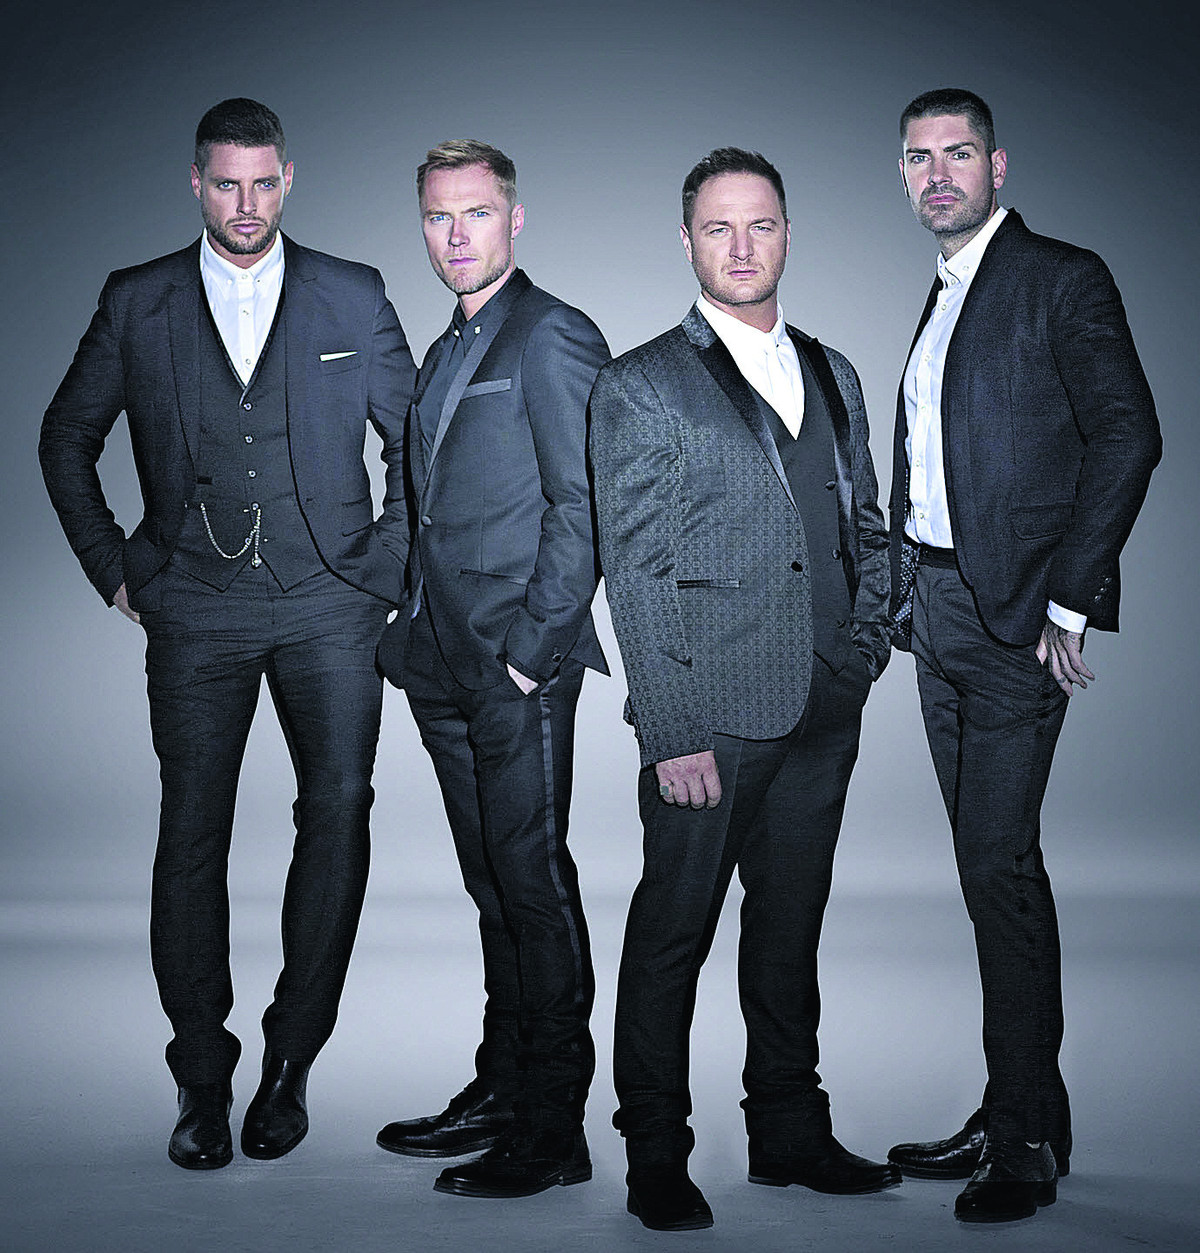 Boyzone will appear at Westonbirt Arboretum on July 18